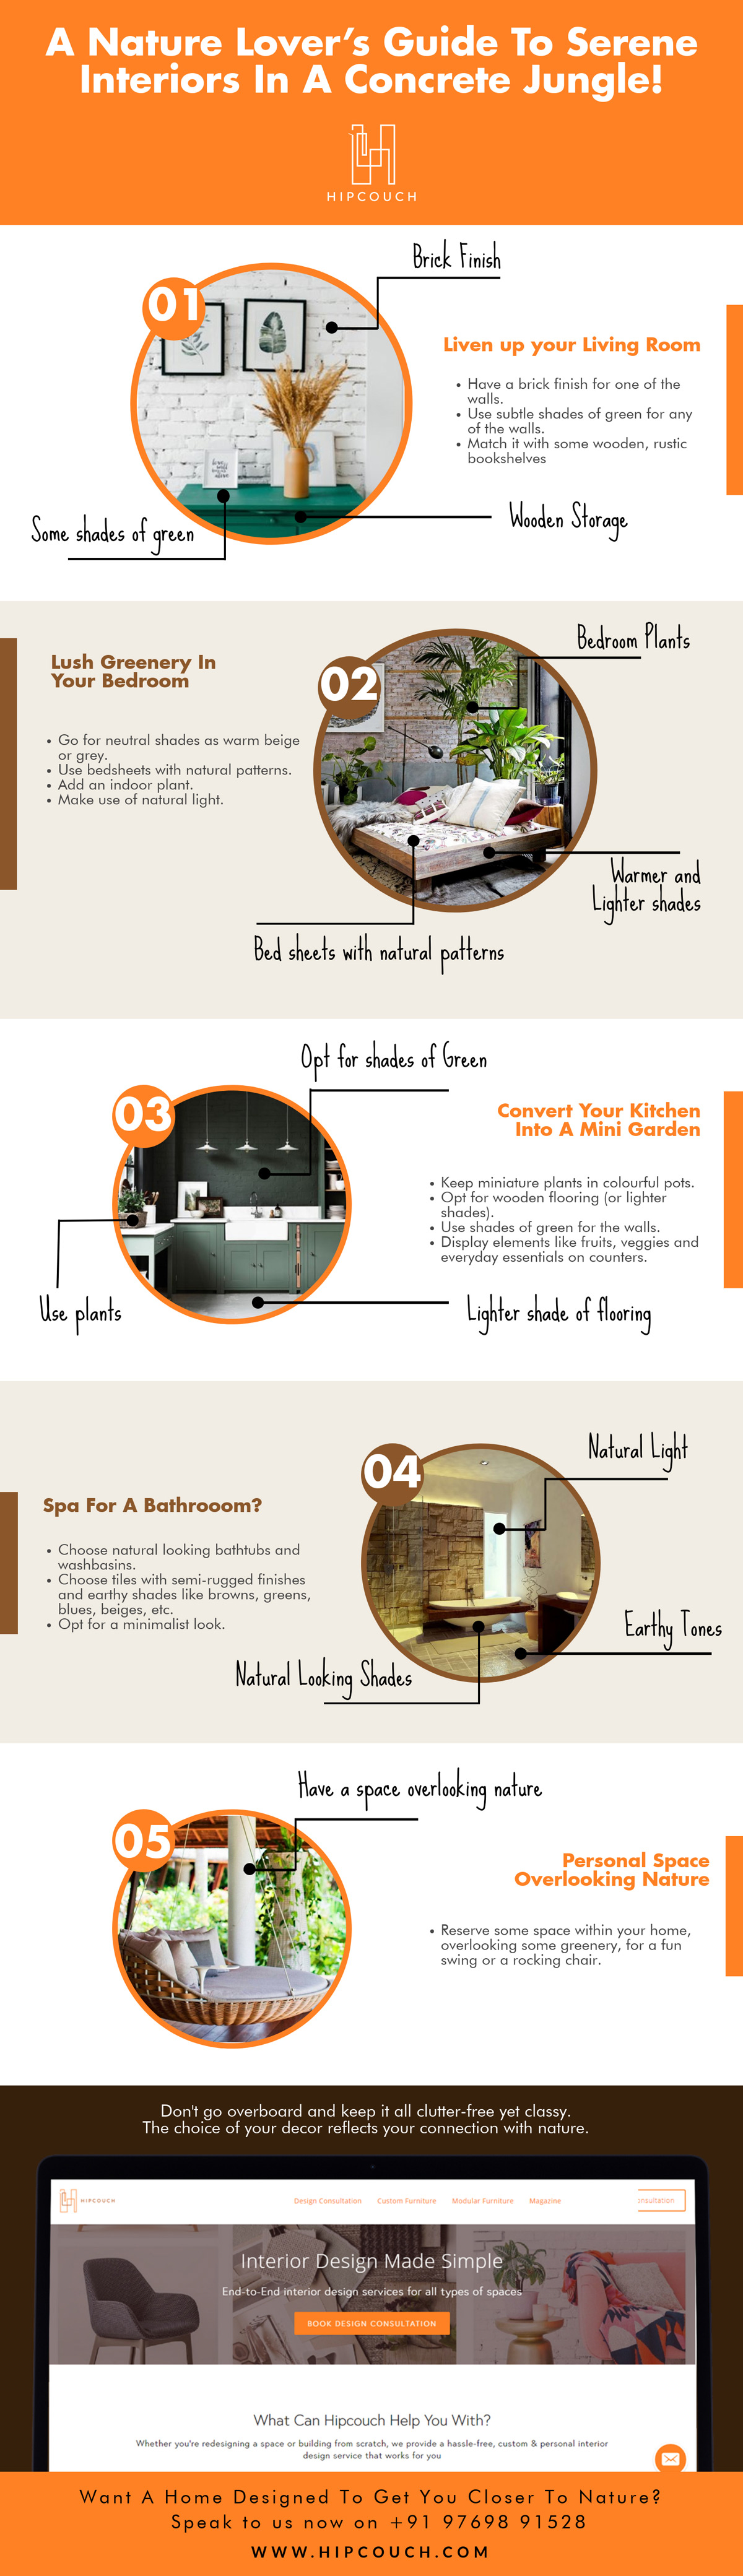 A-Nature-Lover's-Guide-To-Interiors-Visual-Guide.jpg